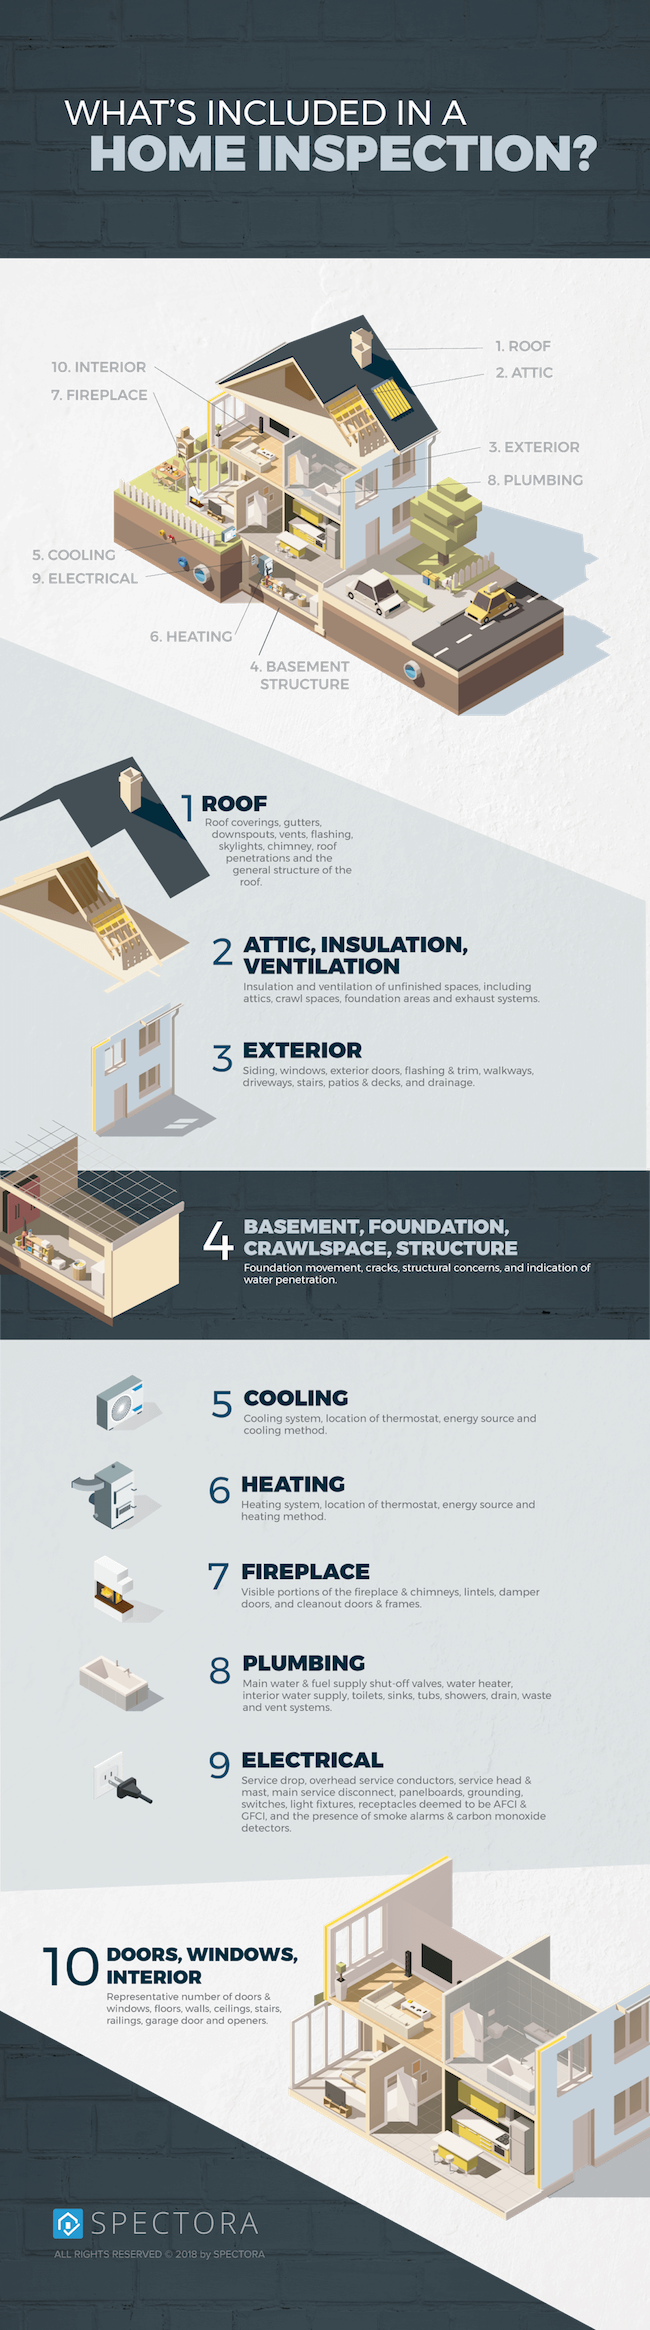 what-included-home-inspection copy (1).png